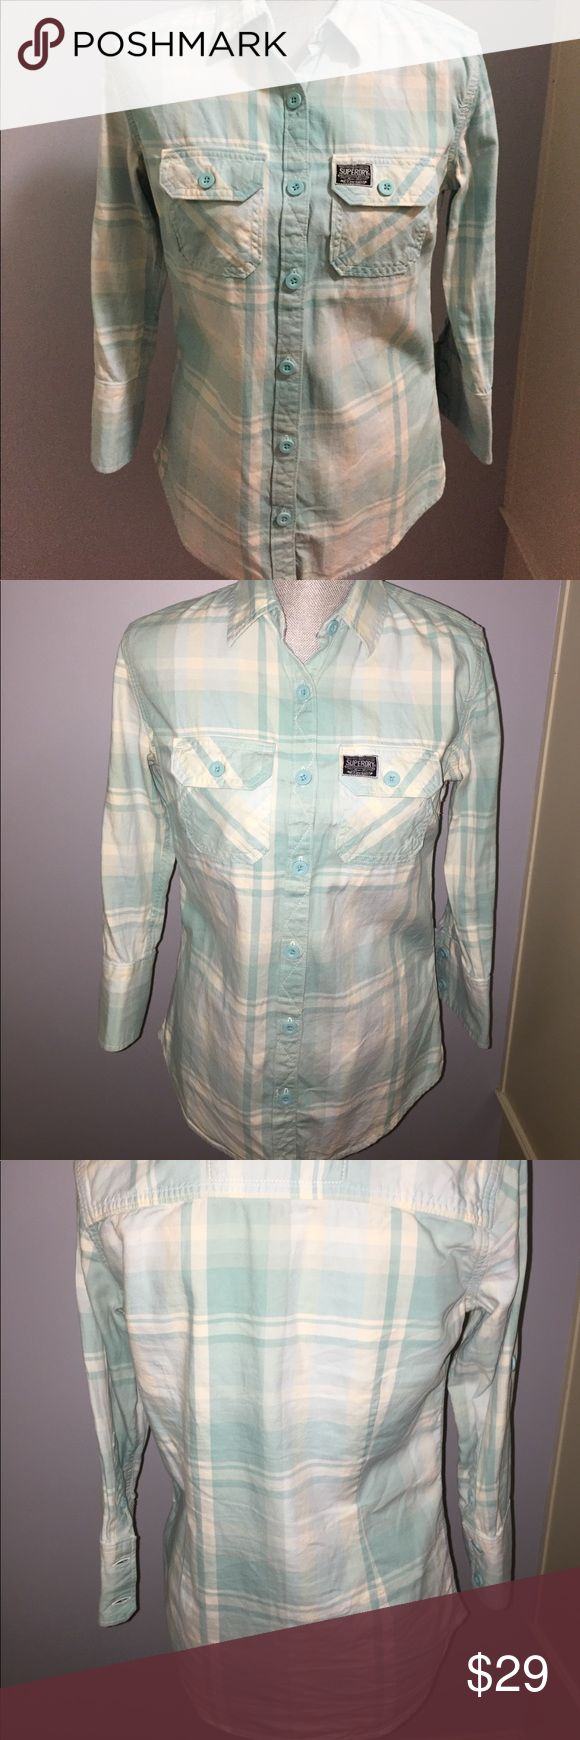 Superdry Plaid Shirt Superdry women's button down Plaid Shirt in mint green and white. 3/4 length Sleeves can be worn down or buttoned up as shown in photos. 100% cotton in excellent condition!  Women's medium. Superdry Tops Button Down Shirts